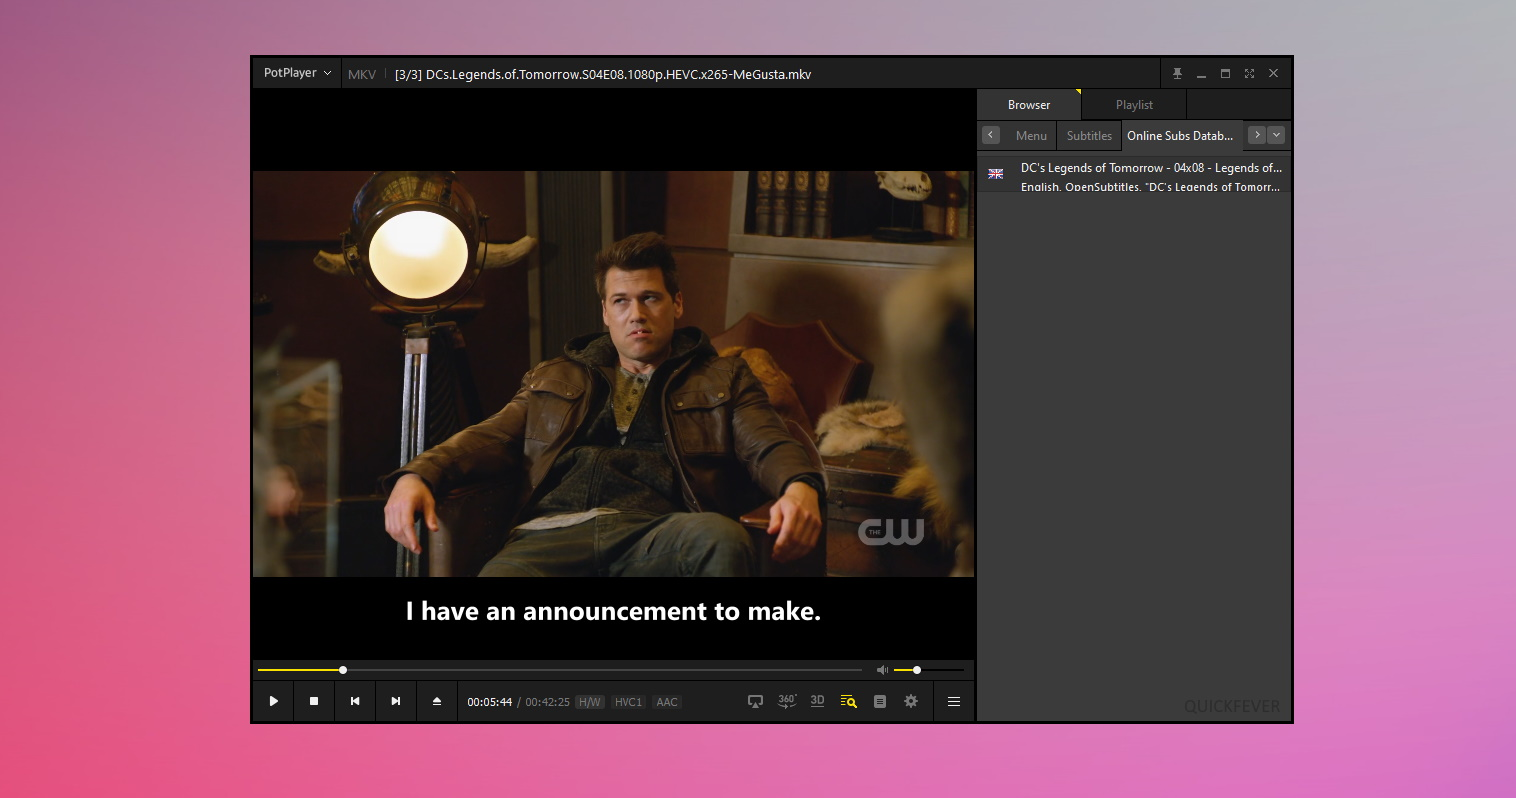 Potplayer windows 10 video player now have easy accessible subtitle menu in right panel